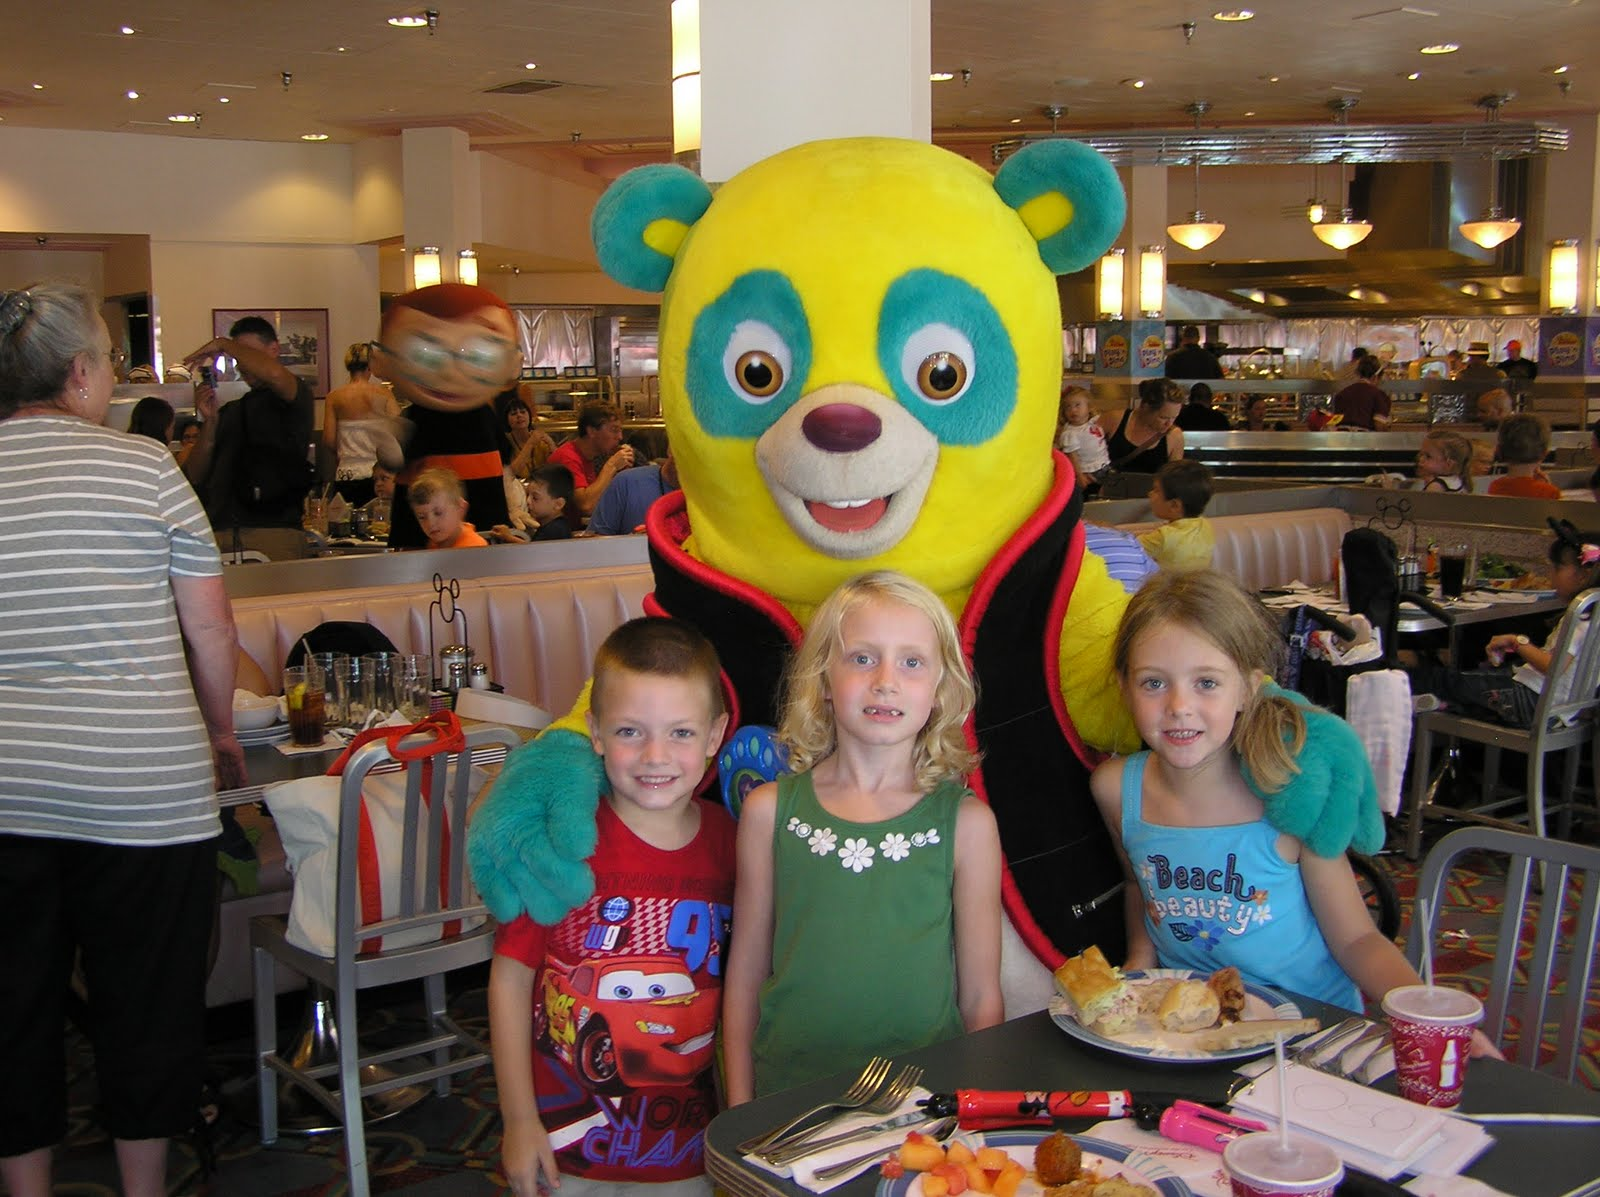 Disney character collection the playhouse disney character meal at lunch we met june and leo of the little einsteins handy manny and agent oso who doesnt do meet and greets kristyandbryce Choice Image